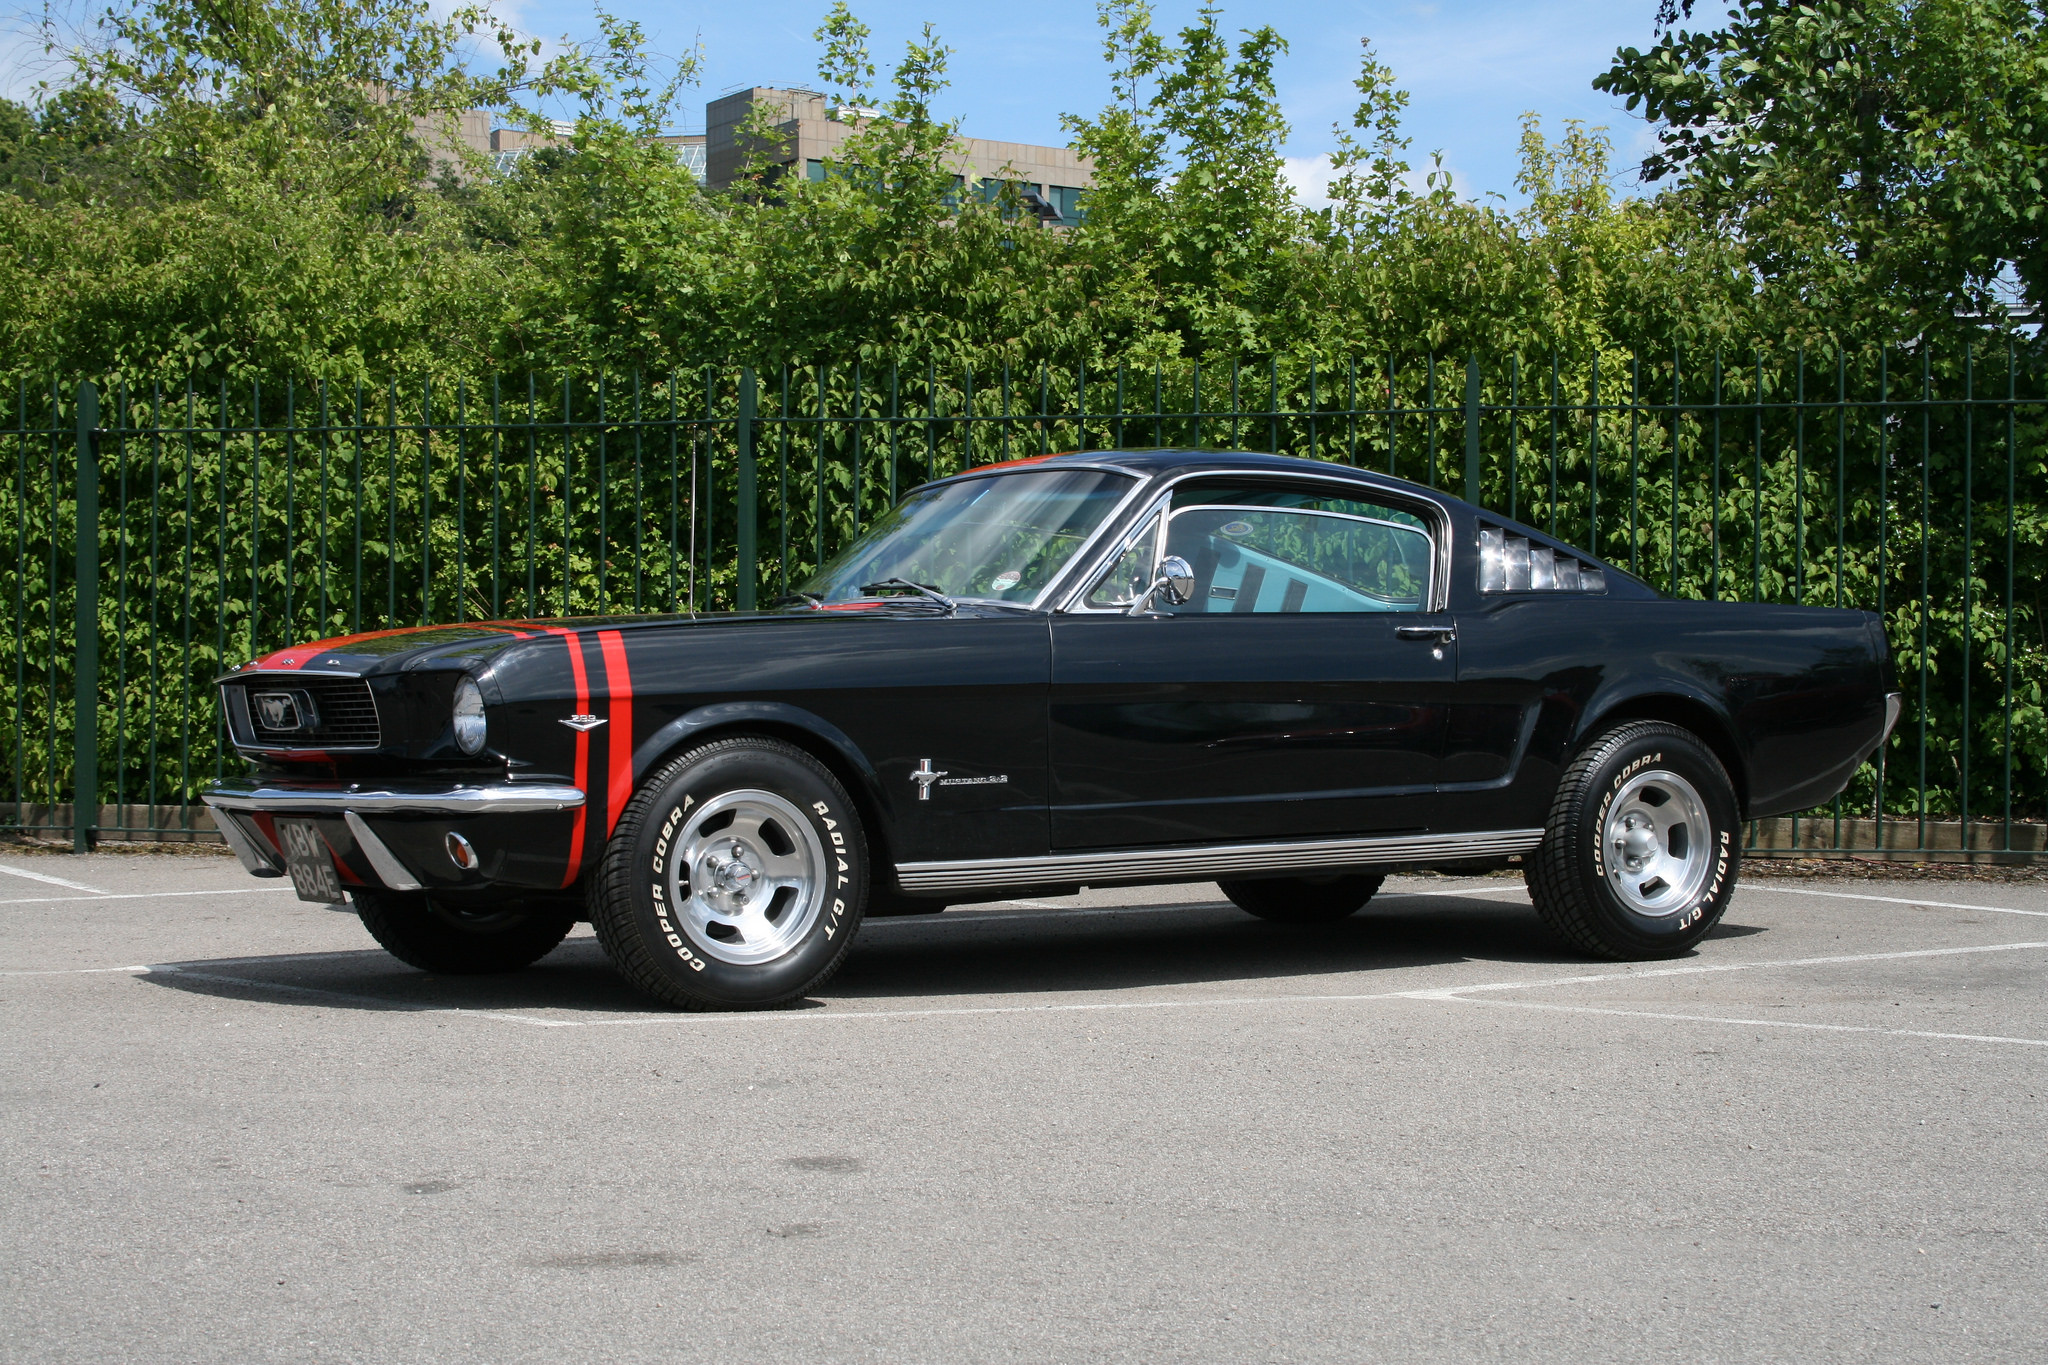 The Most Iconic Car of the 1960s: Ford Mustang